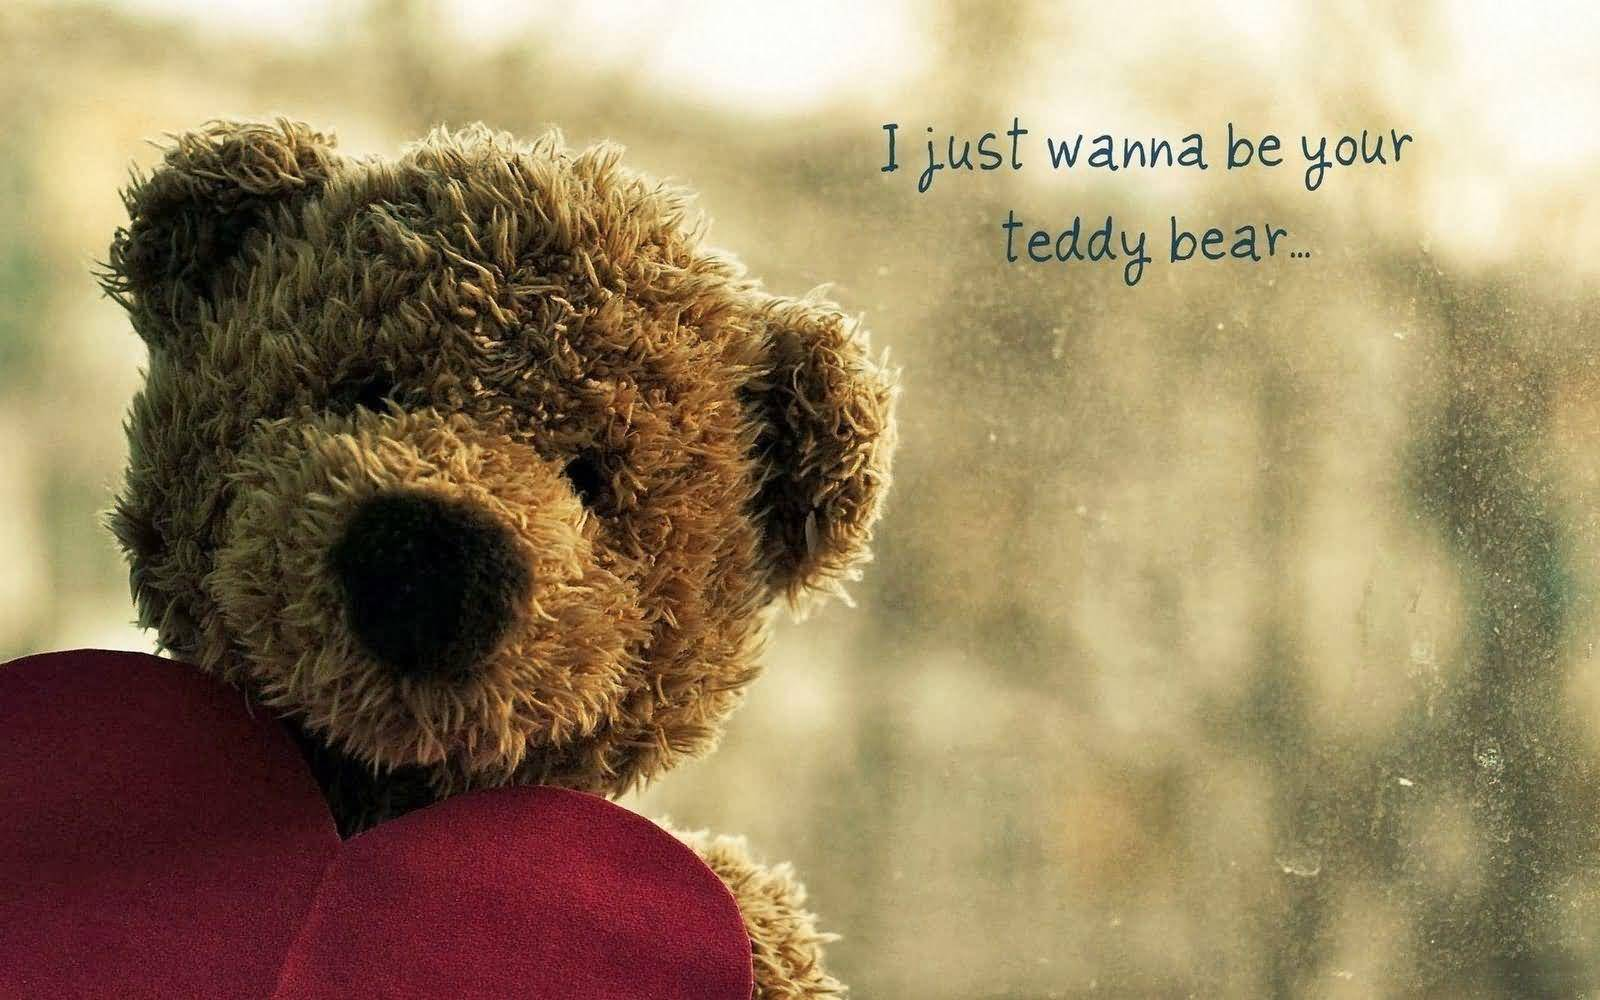 Happy Teddy Day I just wanna be your perfect wishing for your lovely girlfriend